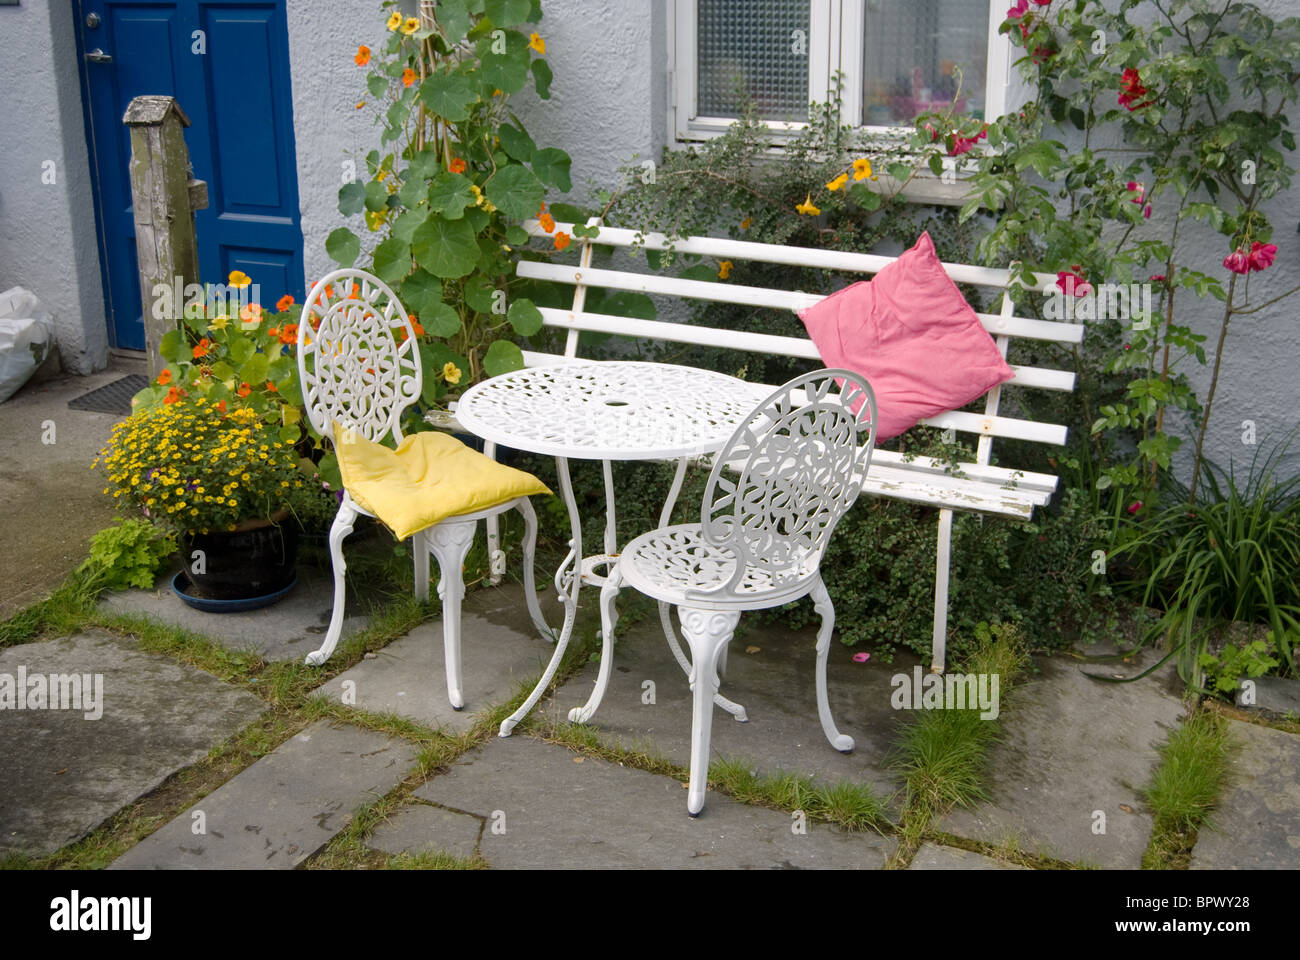 welcome scene, sweet home, white bench, table and two chairs in front yard of a house - Stock Image